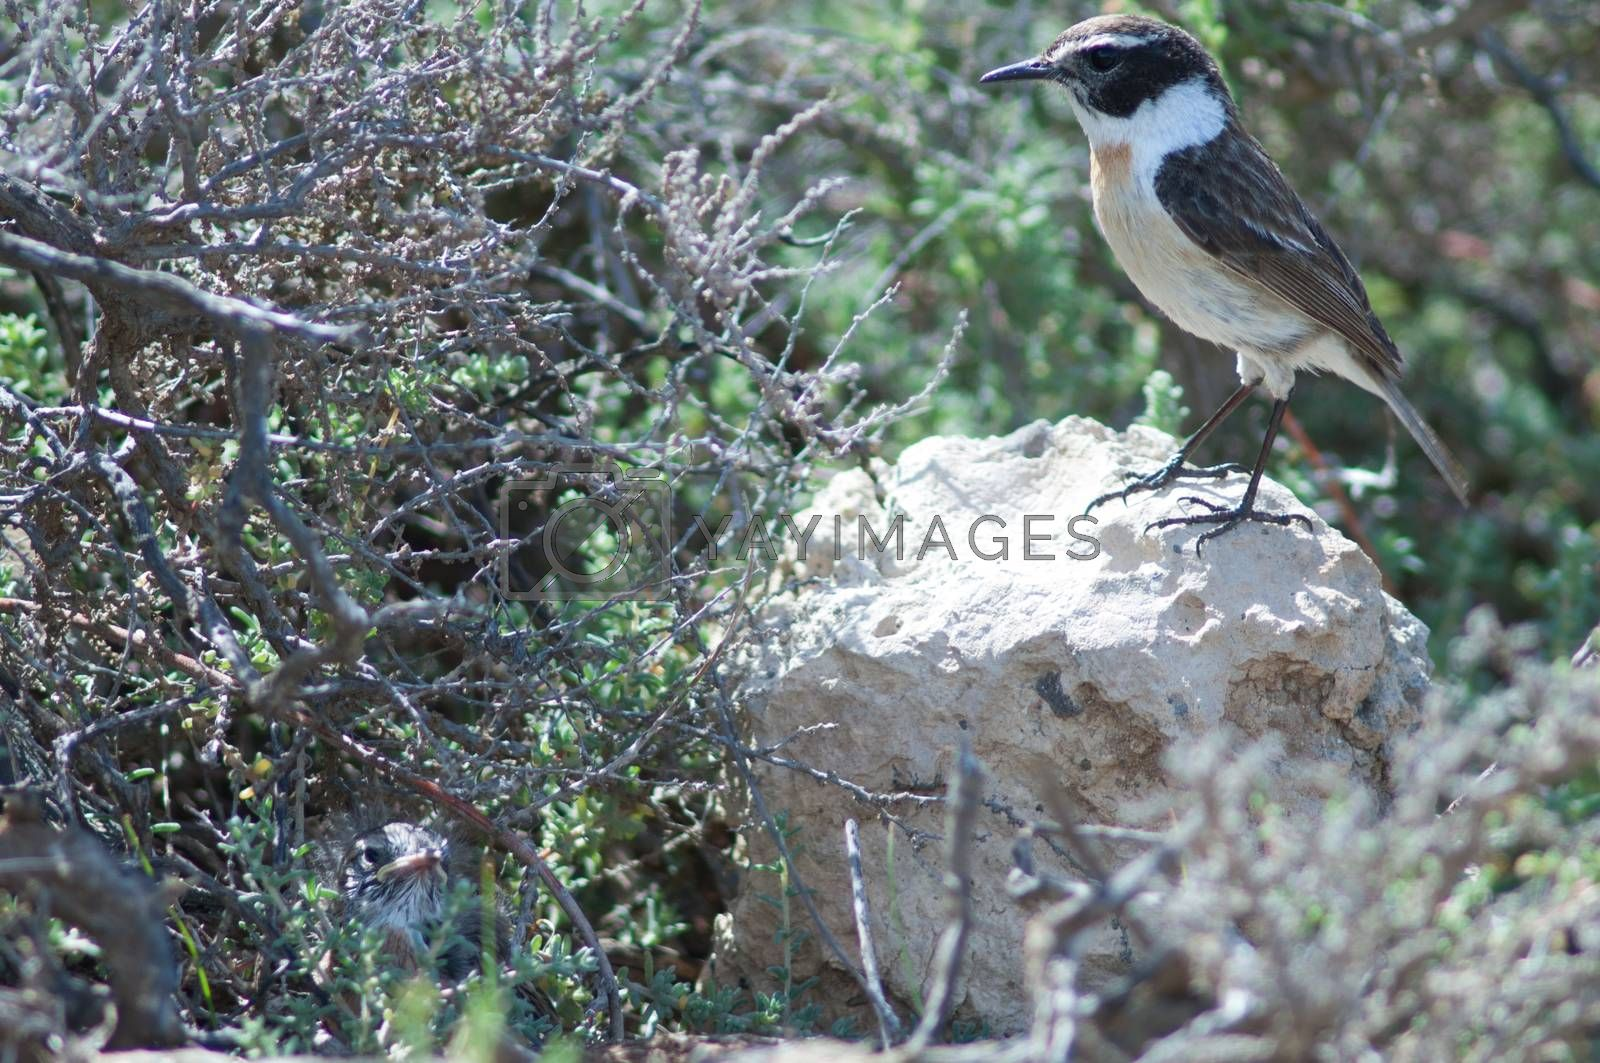 Canary Islands stonechats (Saxicola dacotiae). Male and its chick. Esquinzo ravine. La Oliva. Fuerteventura. Canary Islands. Spain.